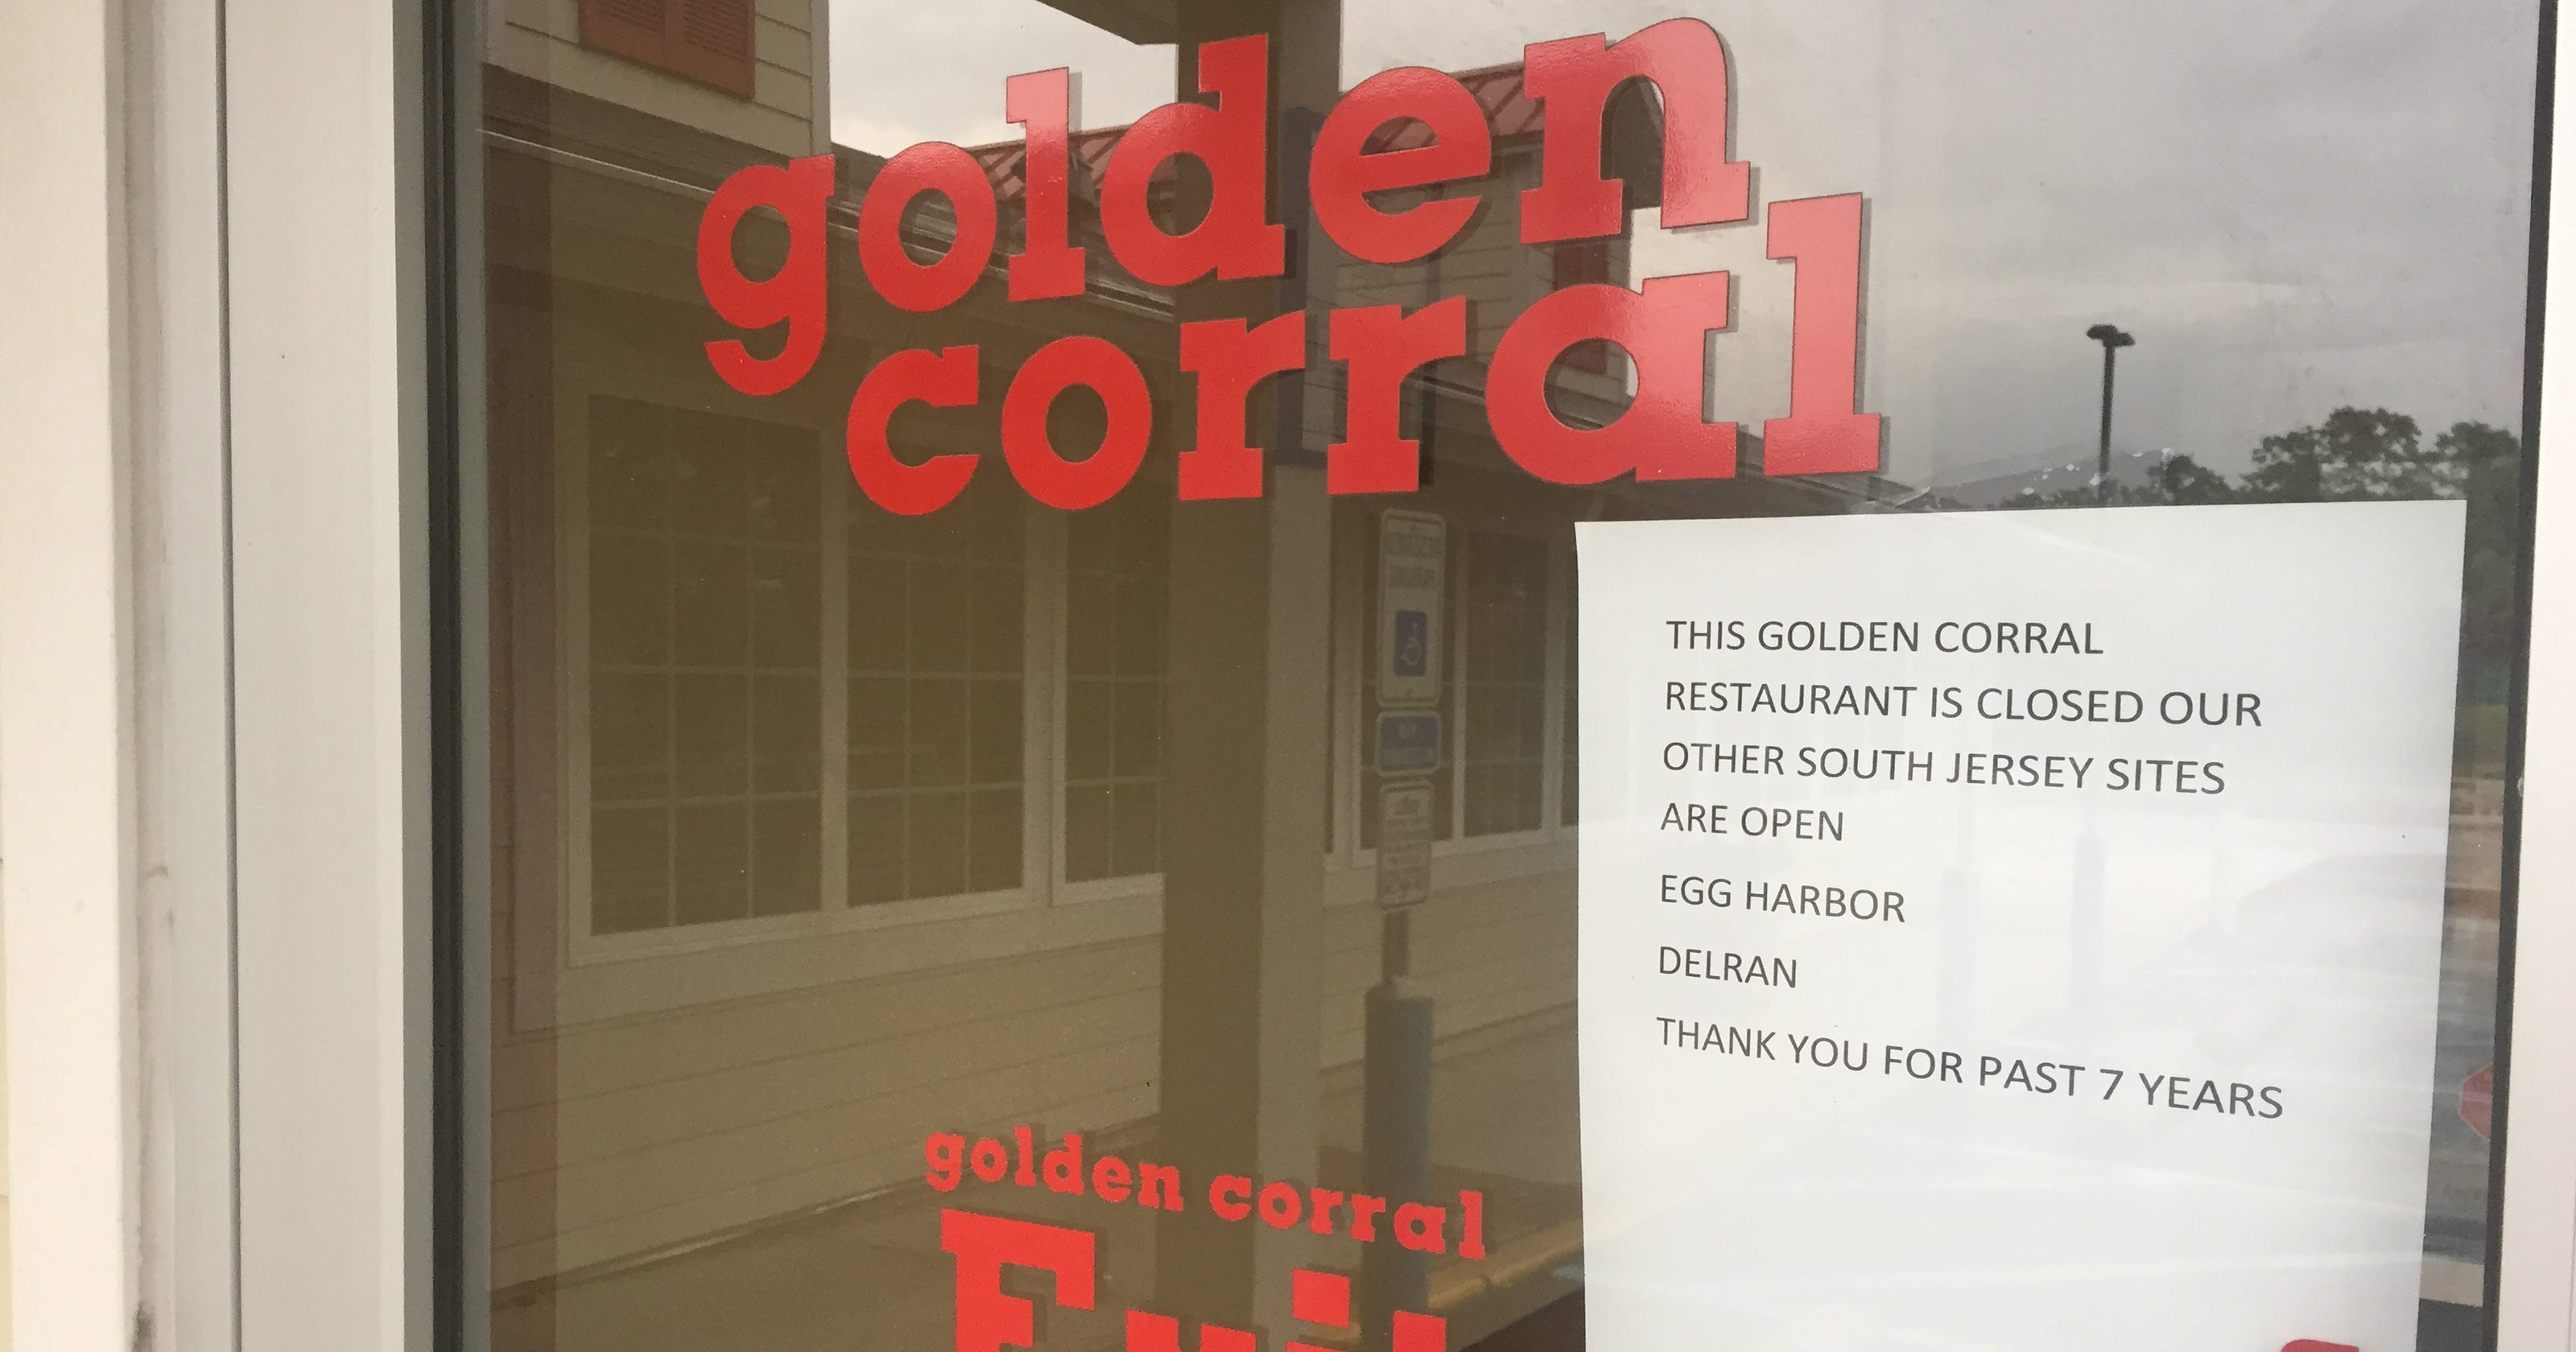 Golden Corral Restaurant In Vineland New Jersey Closes